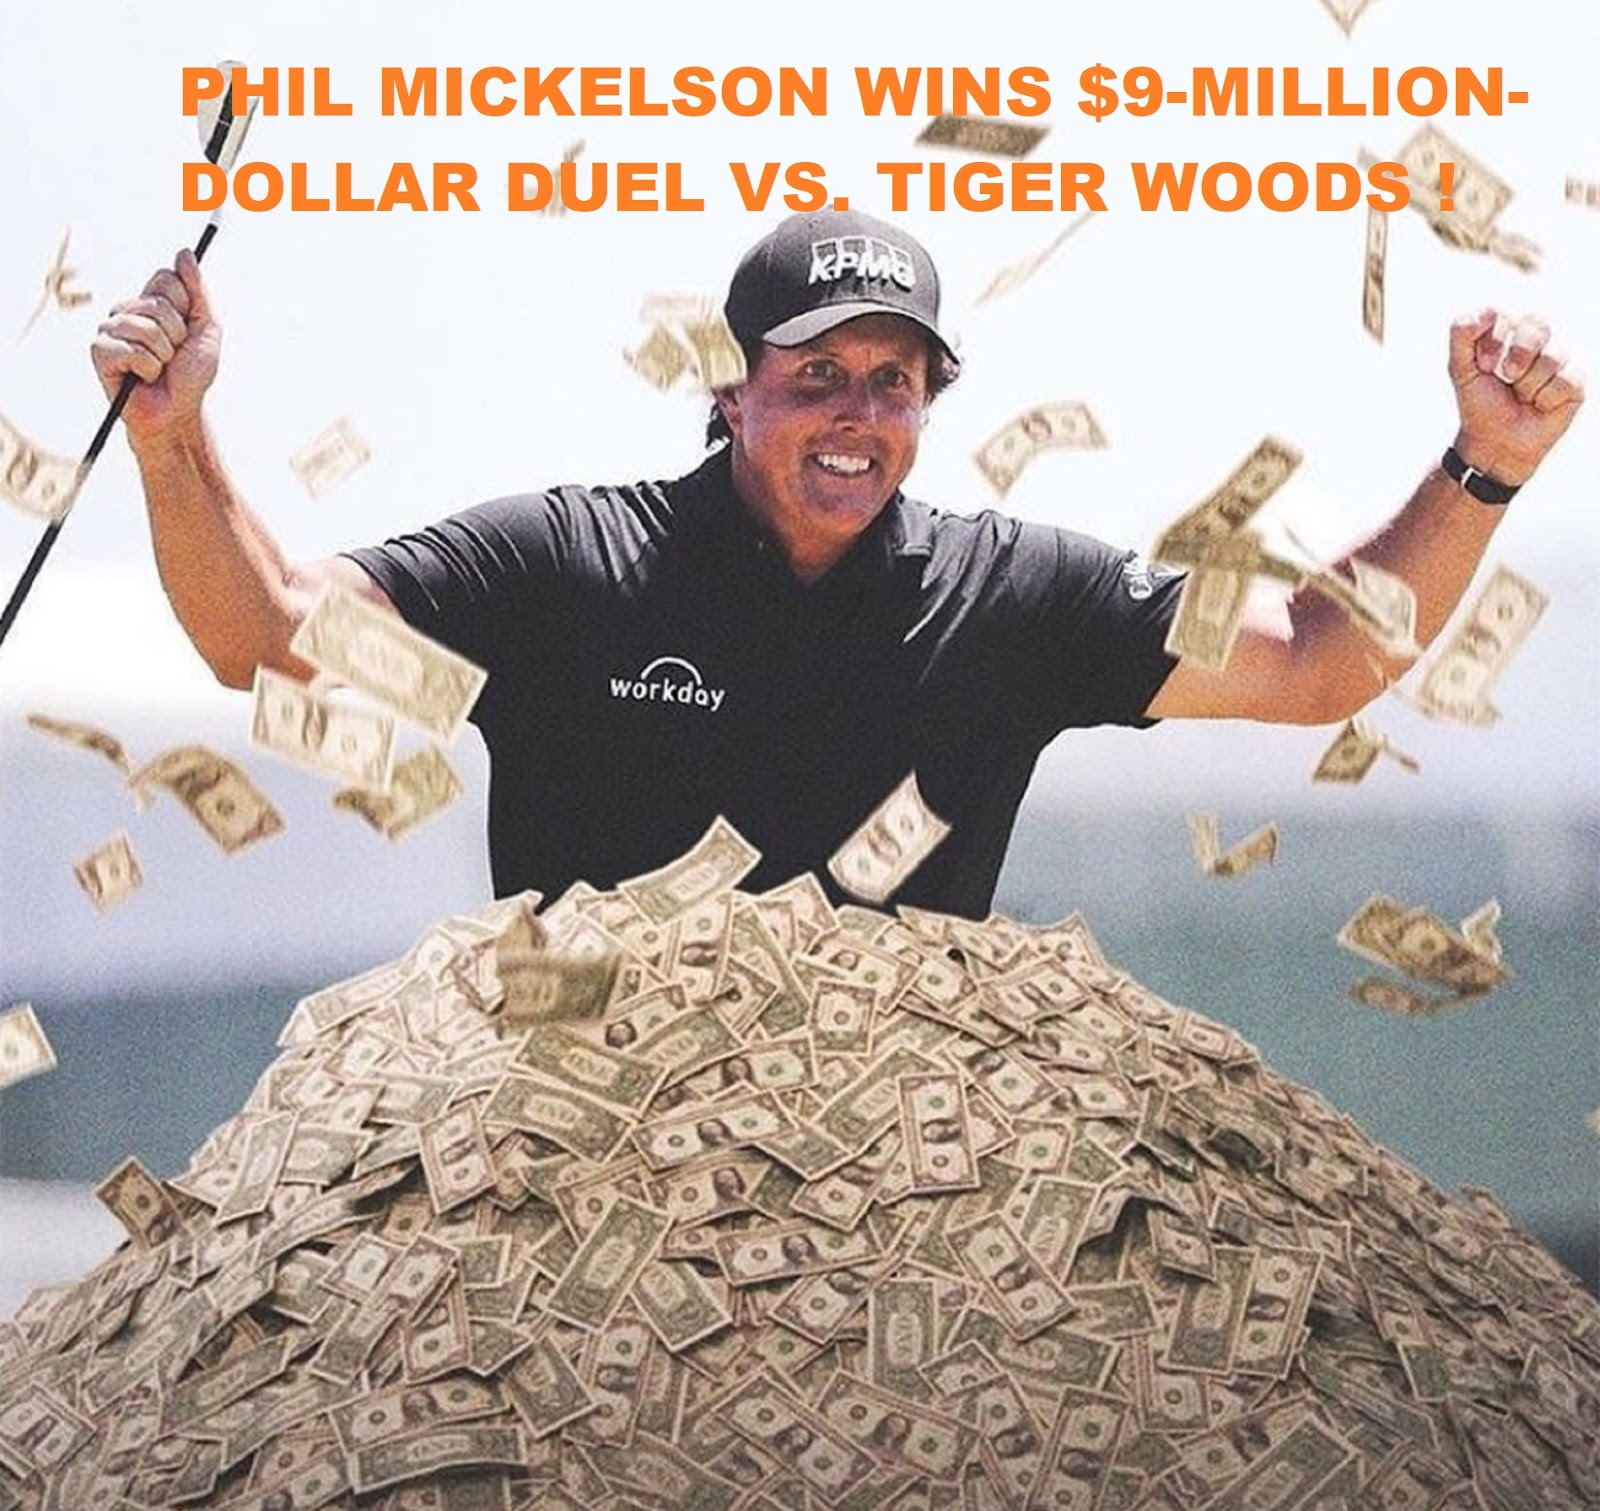 PHIL MICKELSON 5